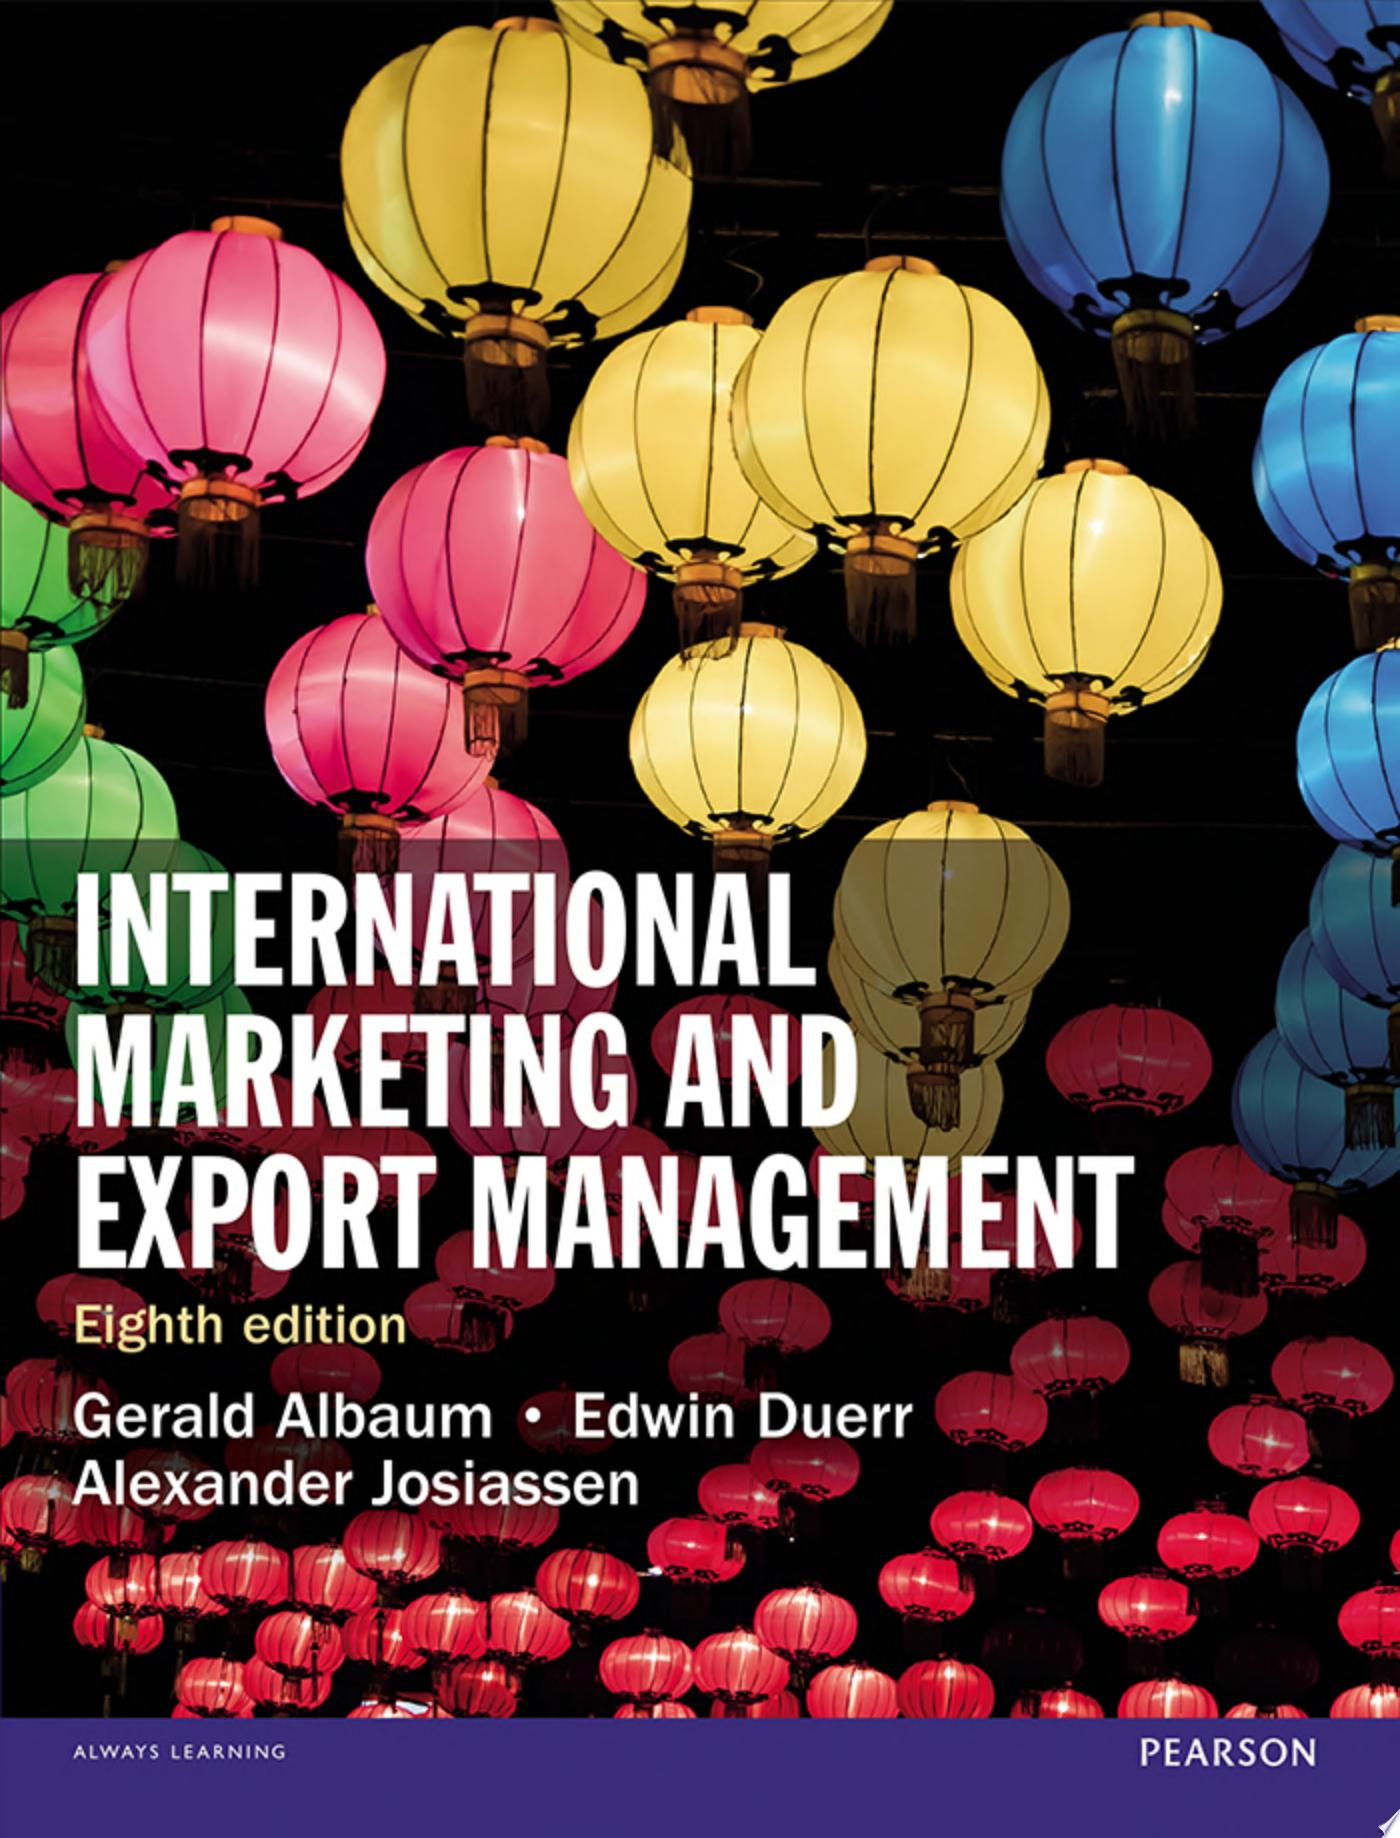 International Marketing and Export Management